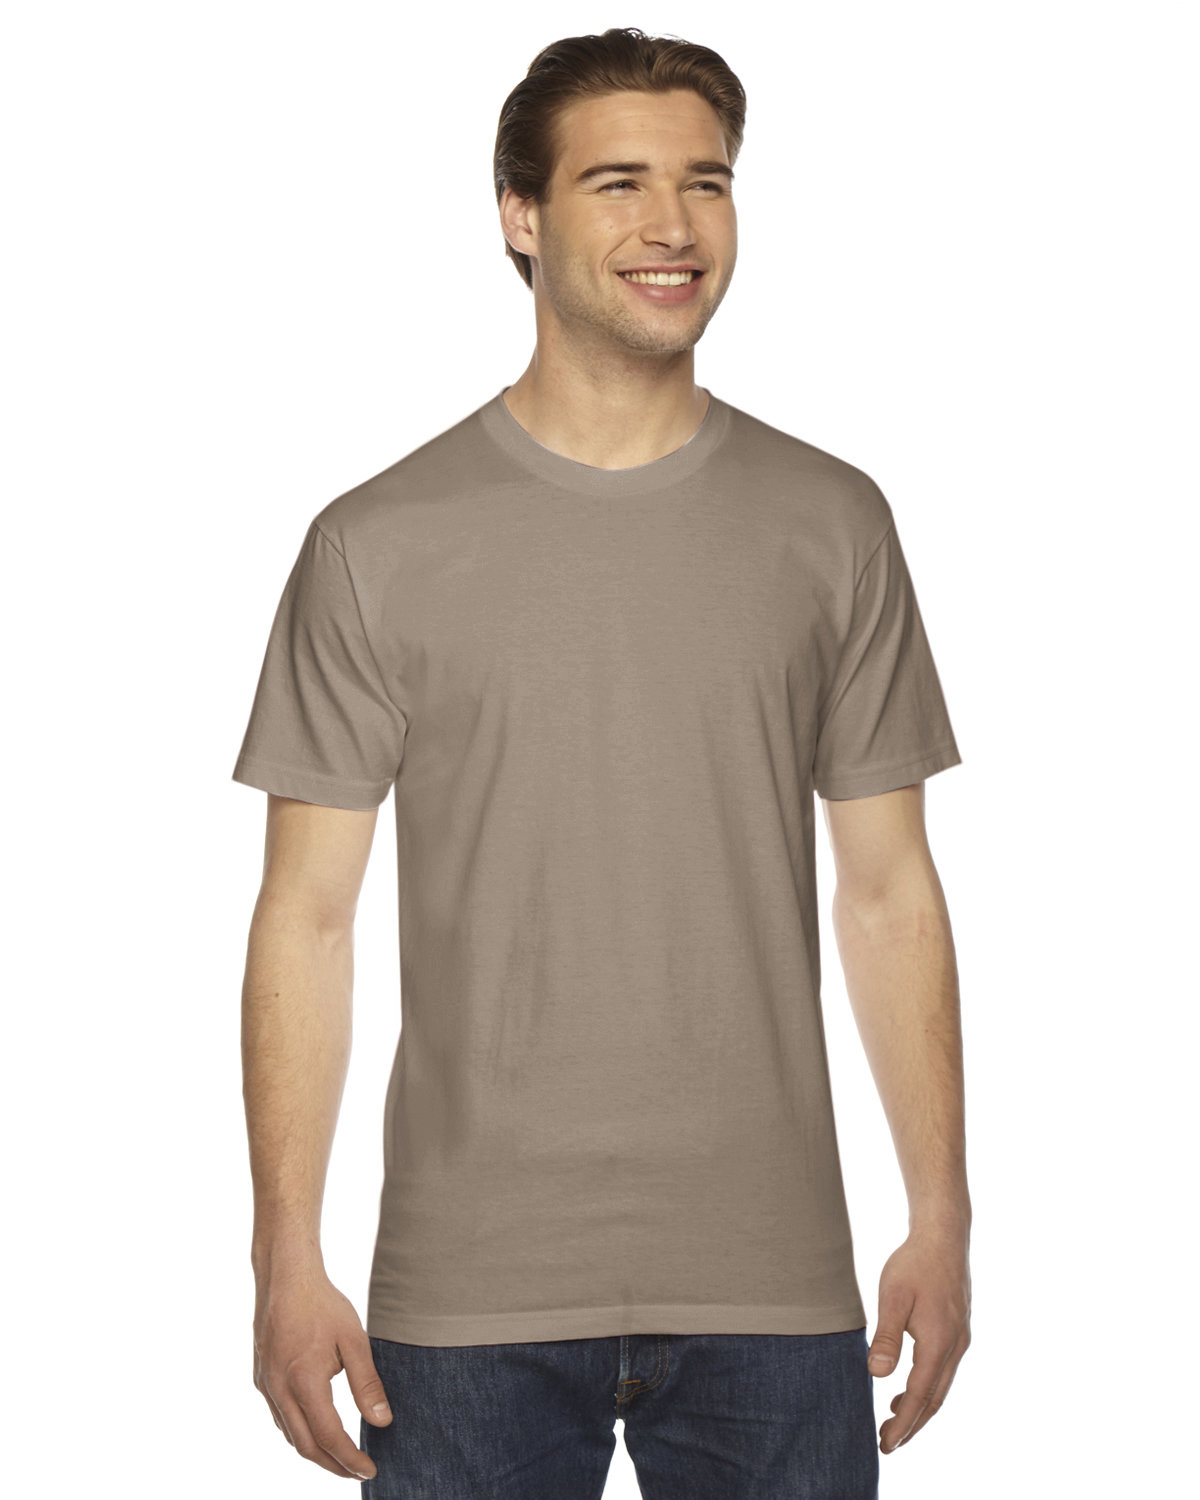 American Apparel Unisex Fine Jersey USA Made T-Shirt ARMY